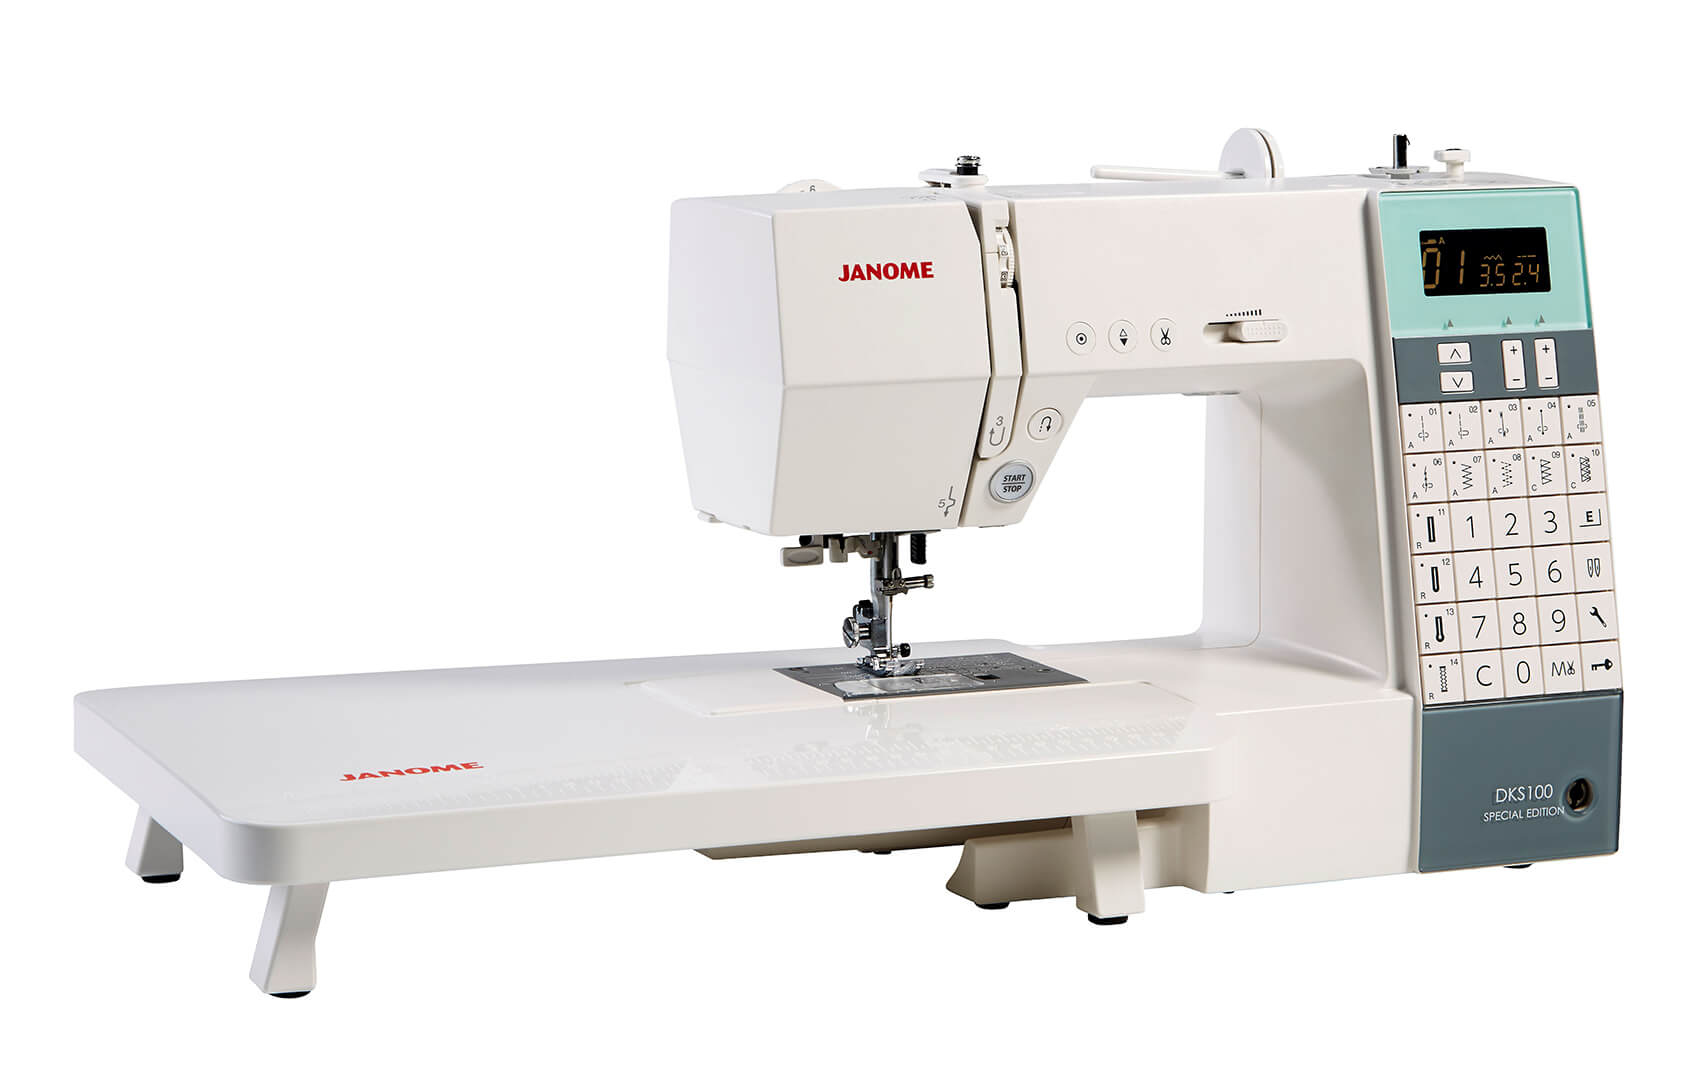 janome dks100 special edition sewing machine new forest fabrics. Black Bedroom Furniture Sets. Home Design Ideas